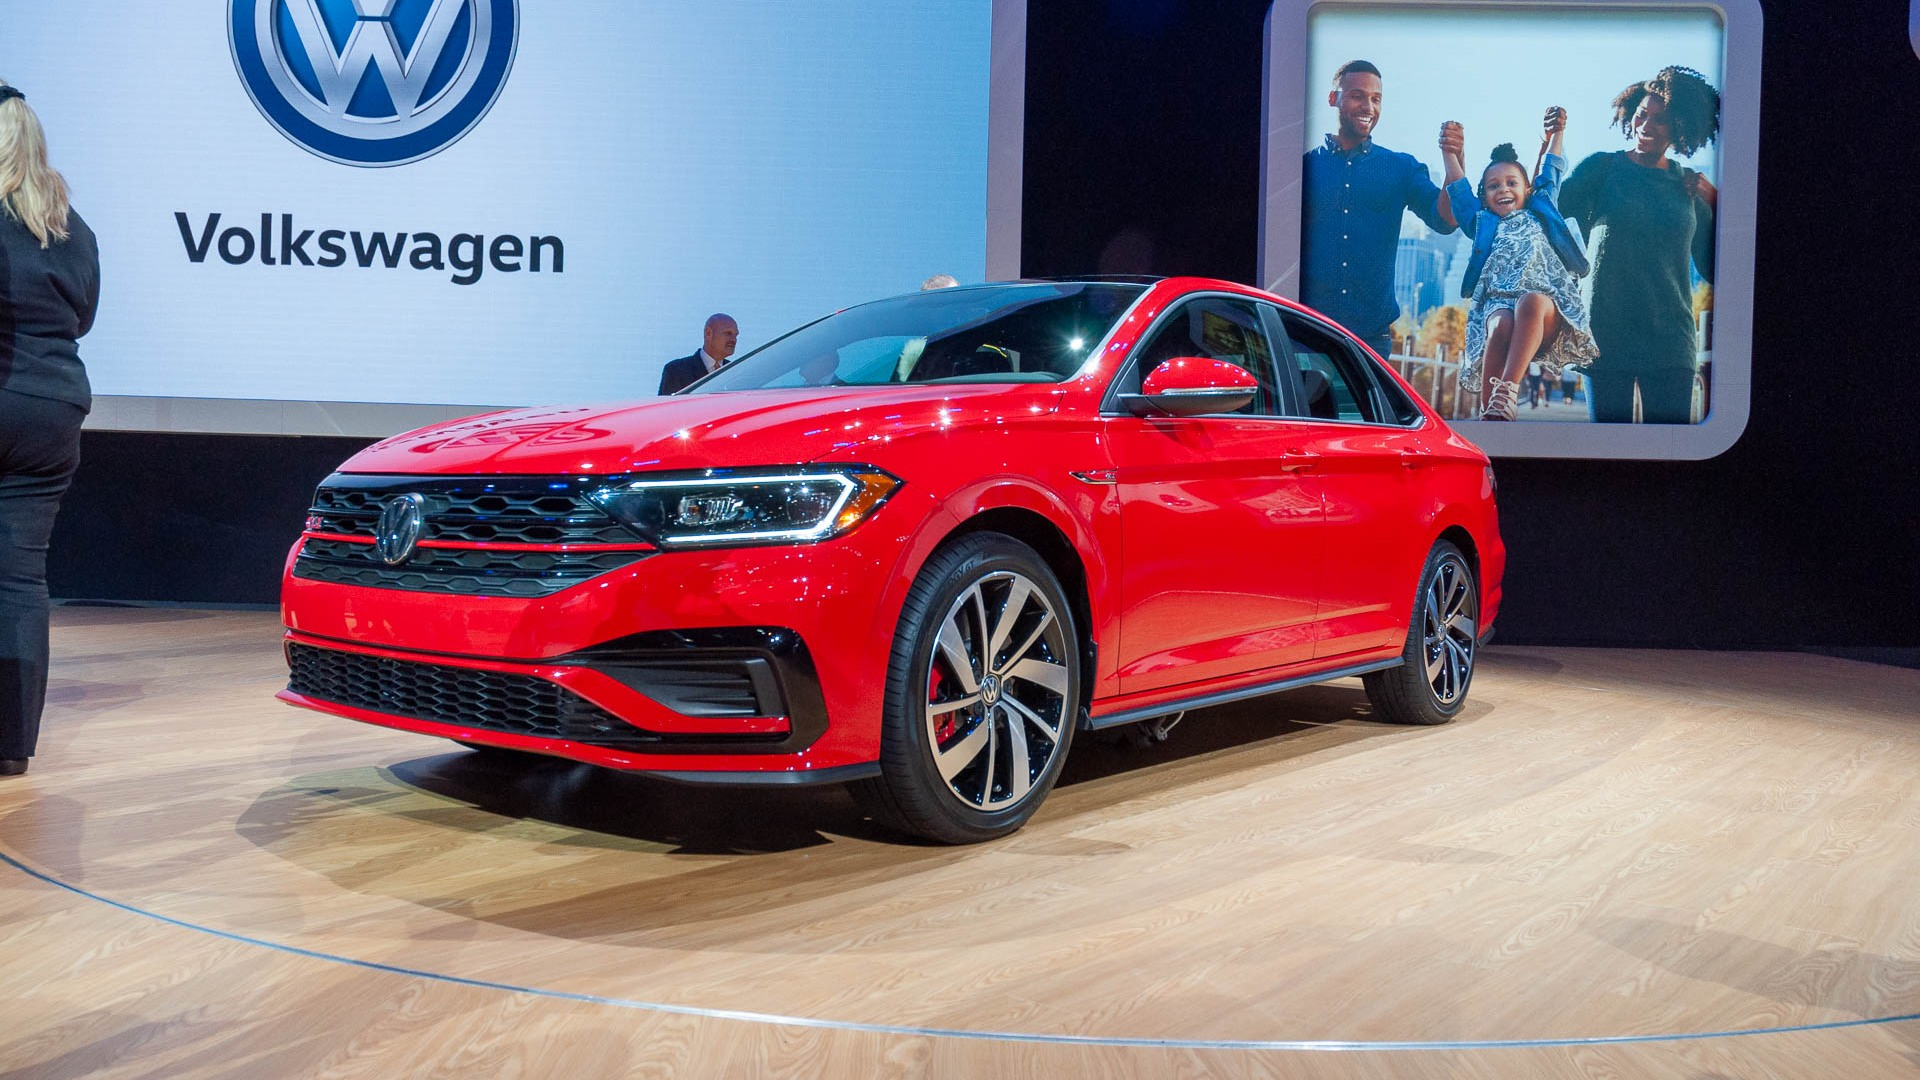 2022 volkswagen jetta gli review horsepower 060  2021 vw